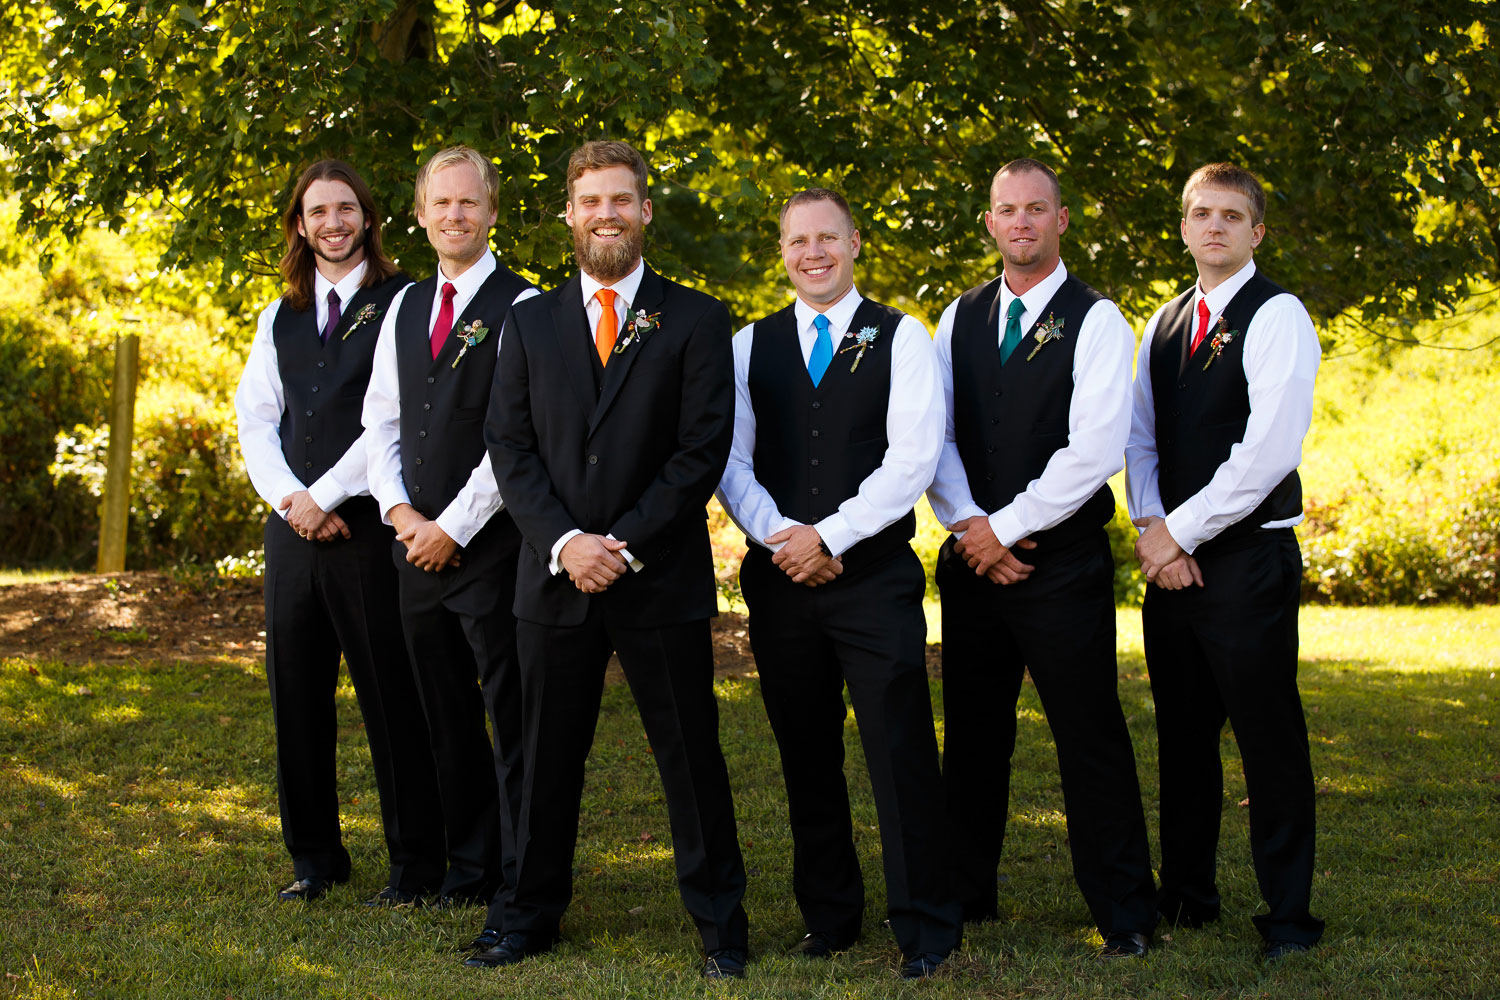 groomsmen photo maryland wedding photographer